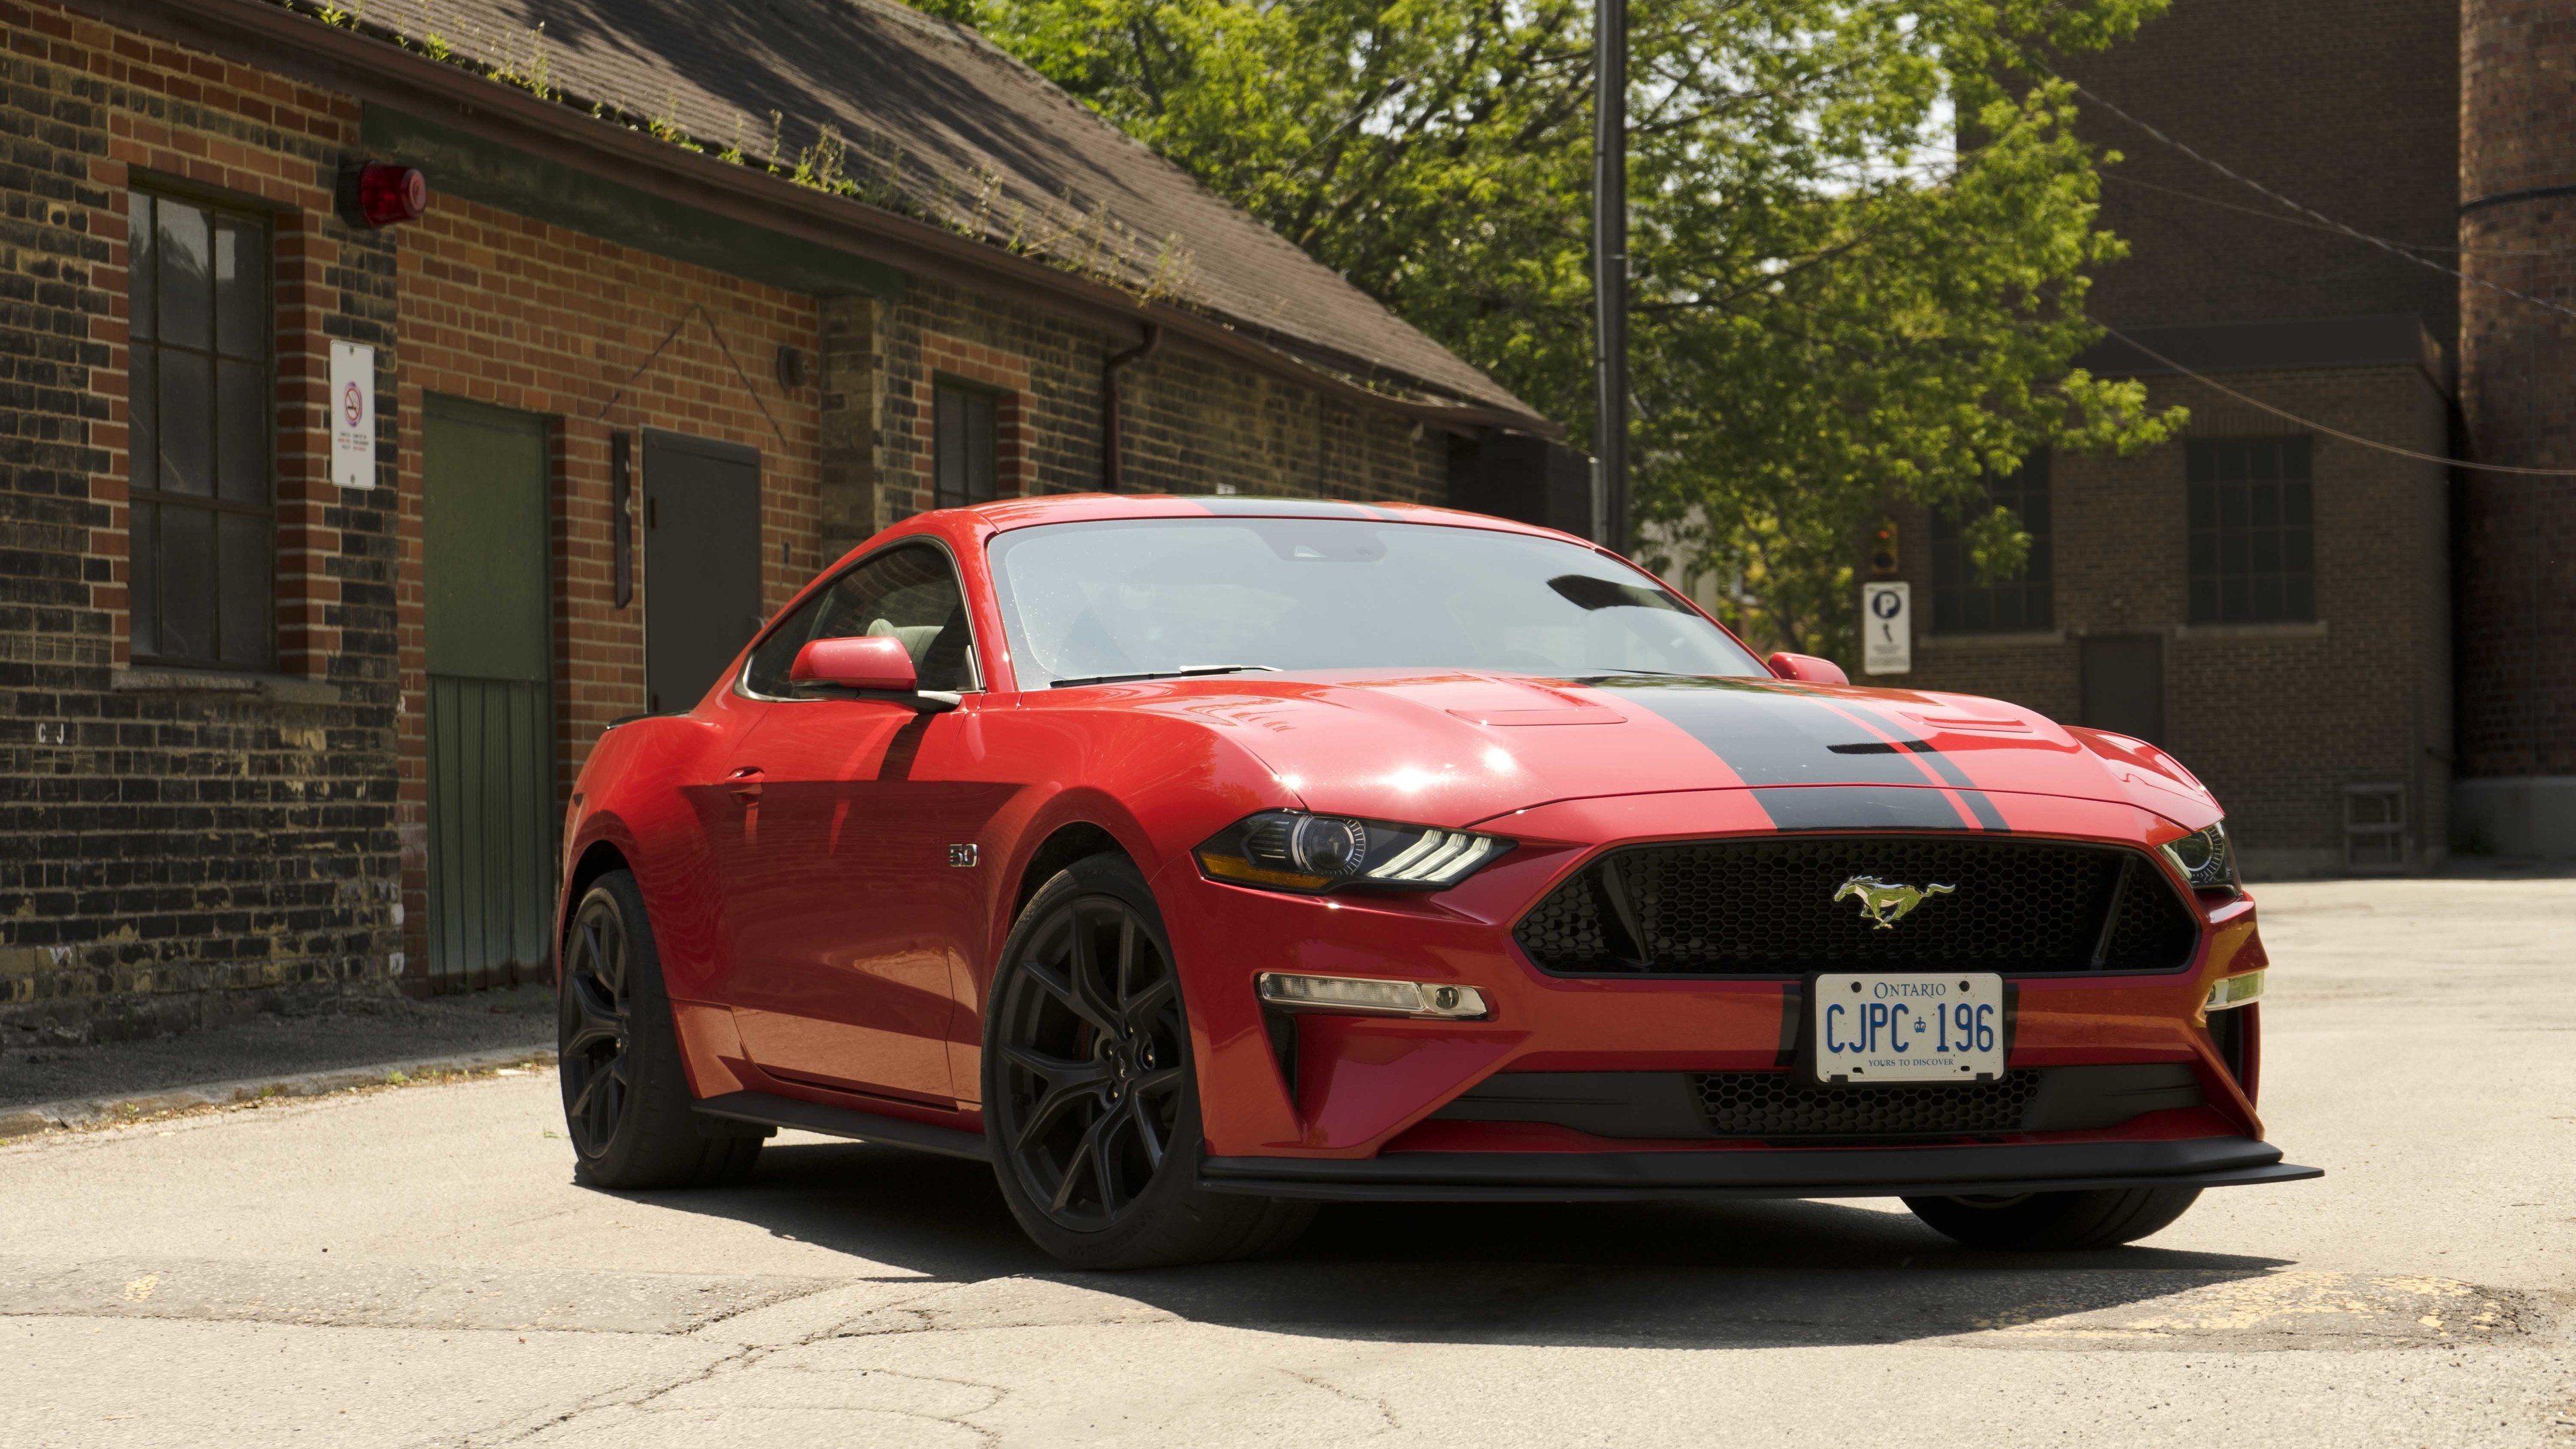 Wallpaper 4k 2019 Ford Mustang Gt Premium 2019 Cars Wallpapers 4k Wallpapers 5k Wallpapers Cars Wallpapers Ford Mustang Wallpapers Hd Wallpapers Mustang Wallpapers